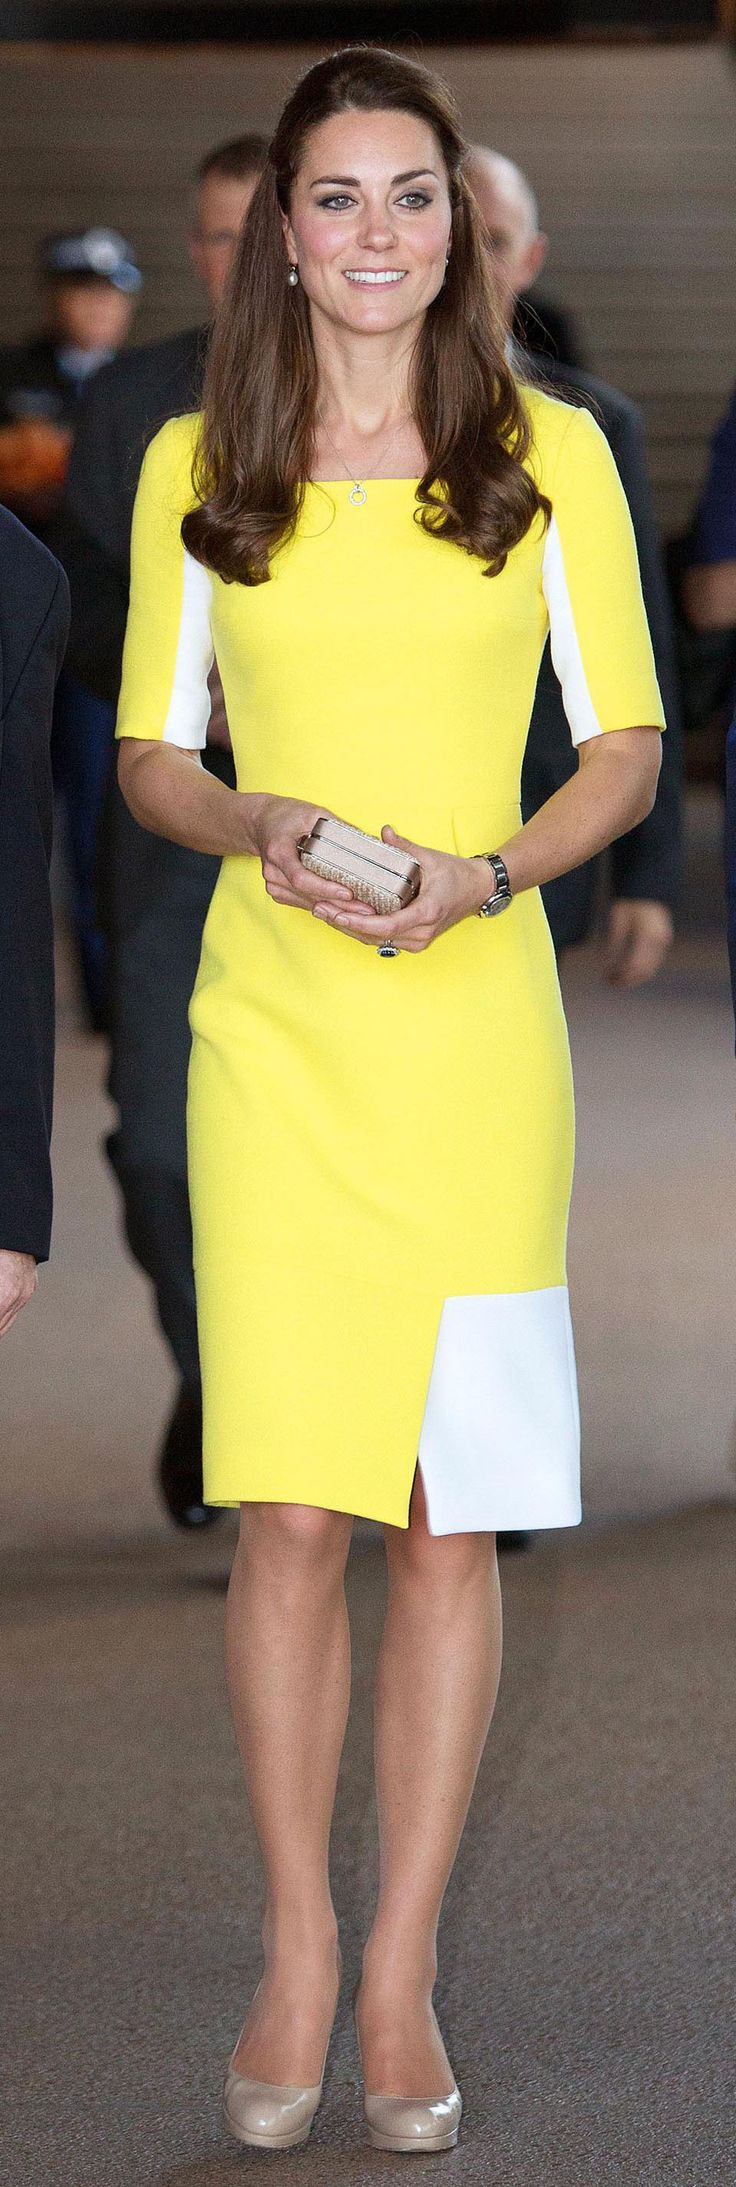 1000 Images About Kate Middleton On Pinterest Kate Middleton Duchess Kate And Cambridge